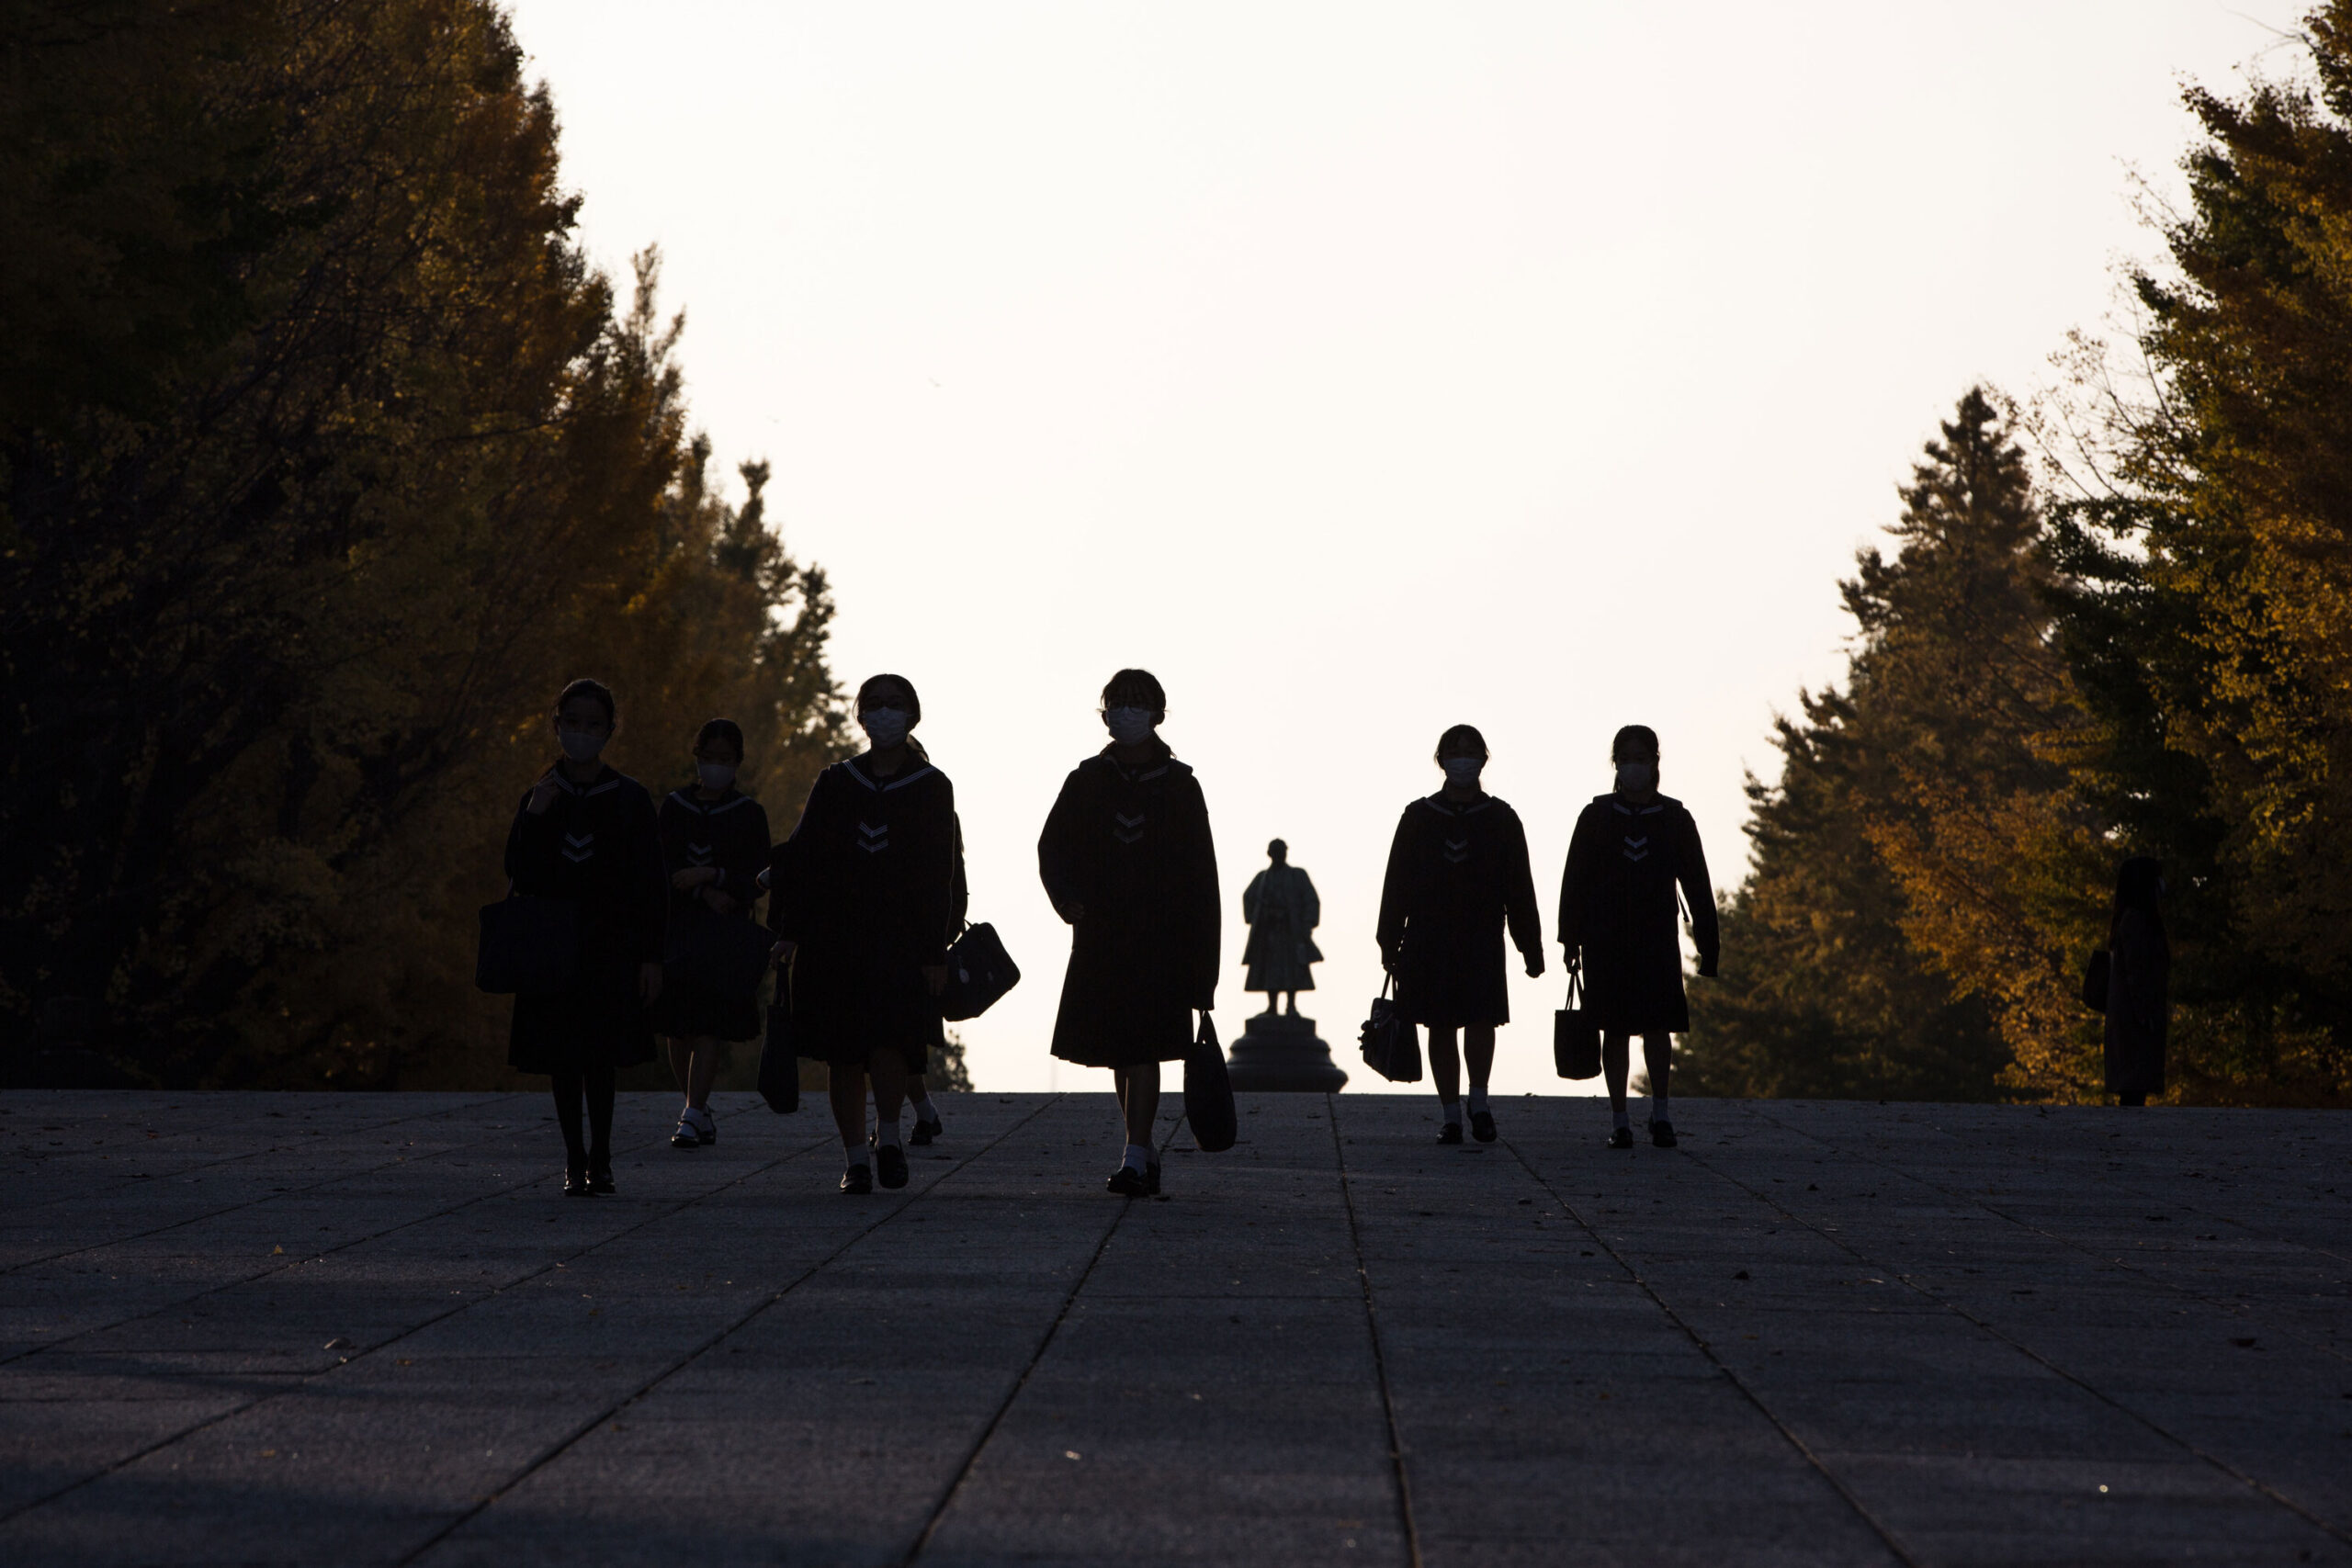 <i>Stanislav Kogiku/SOPA Images/LightRocket/Getty Images</i><br/>Suicides among Japanese schoolchildren hit a record high during the last school year. Japanese elementary school students are shown here walking home after their lessons.